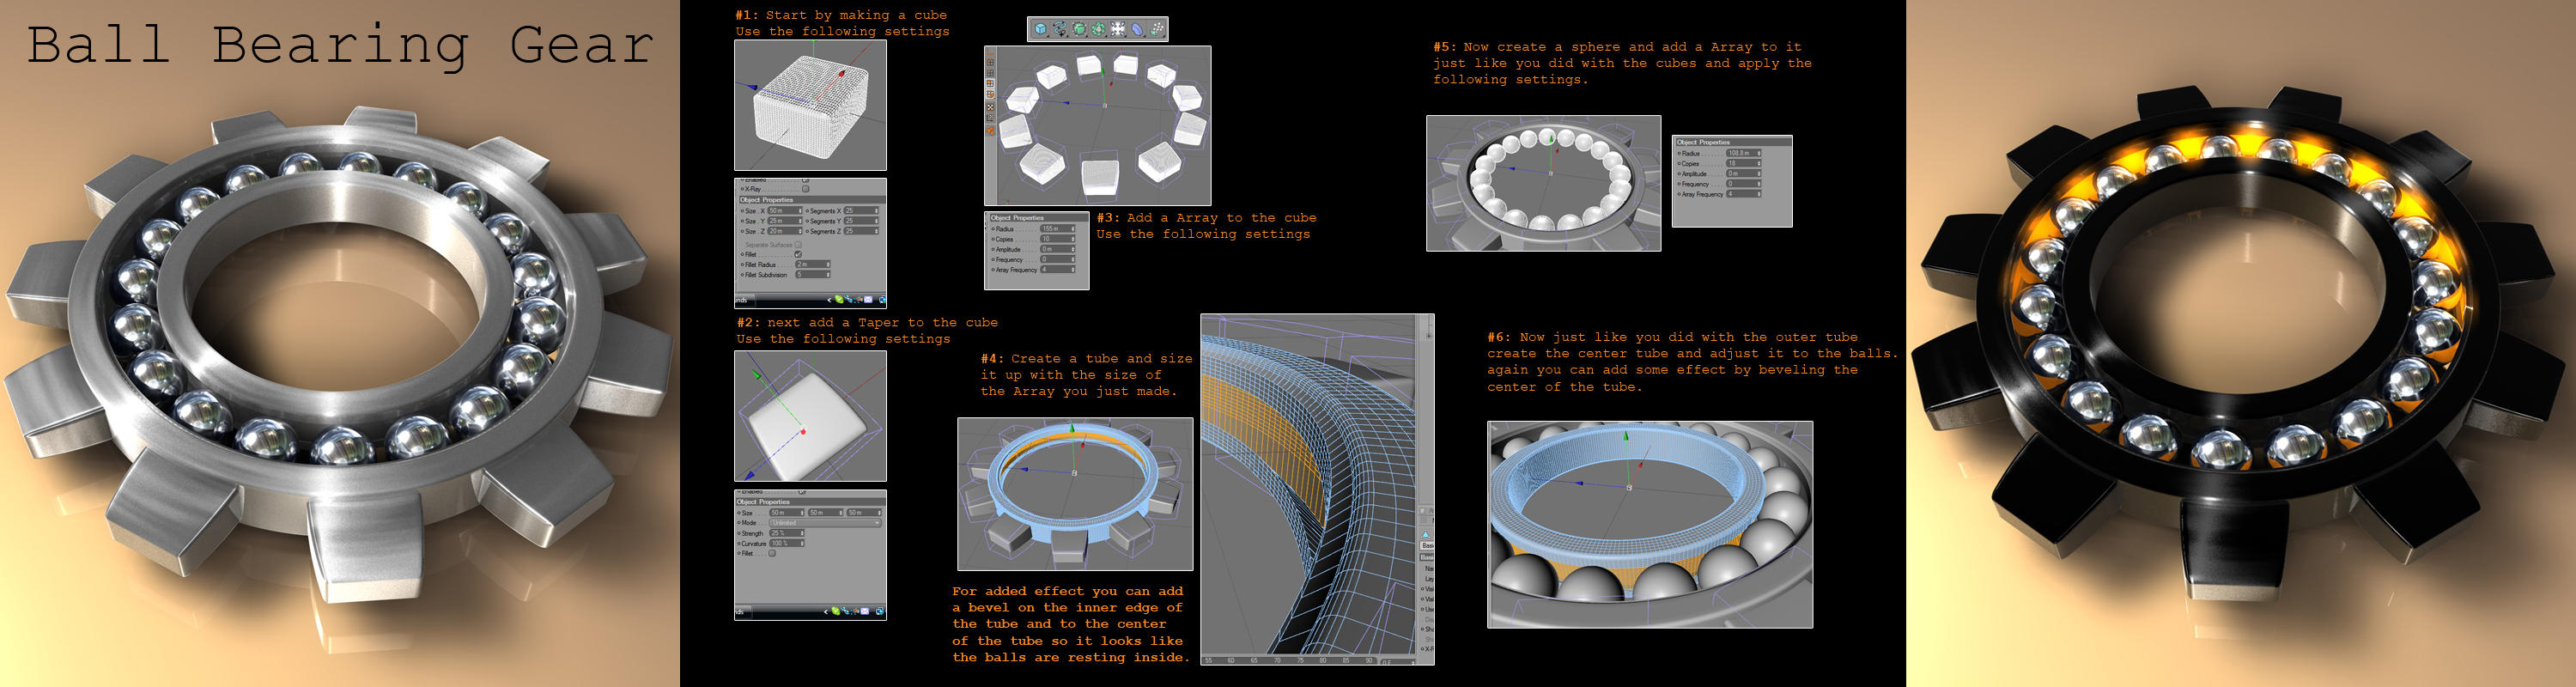 Ball Bearing Gear tutorial by R-Nader